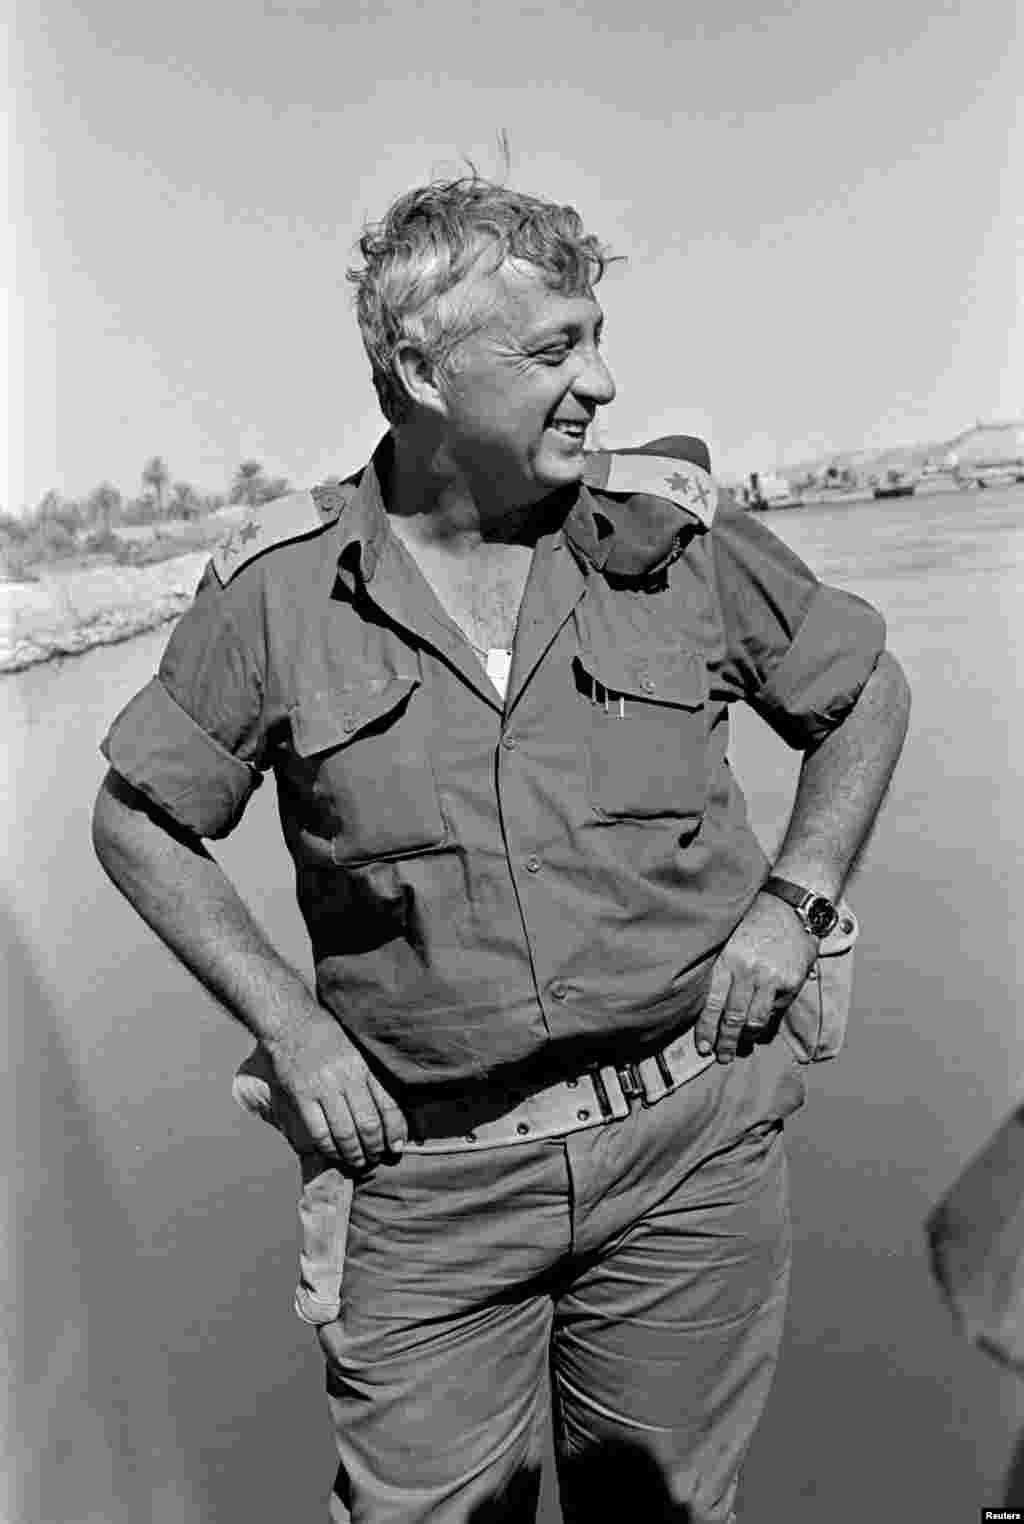 Israeli Major General in the Reserves Ariel Sharon smiles near the Suez Canal, then occupied by Israel, Octo. 31, 1973.